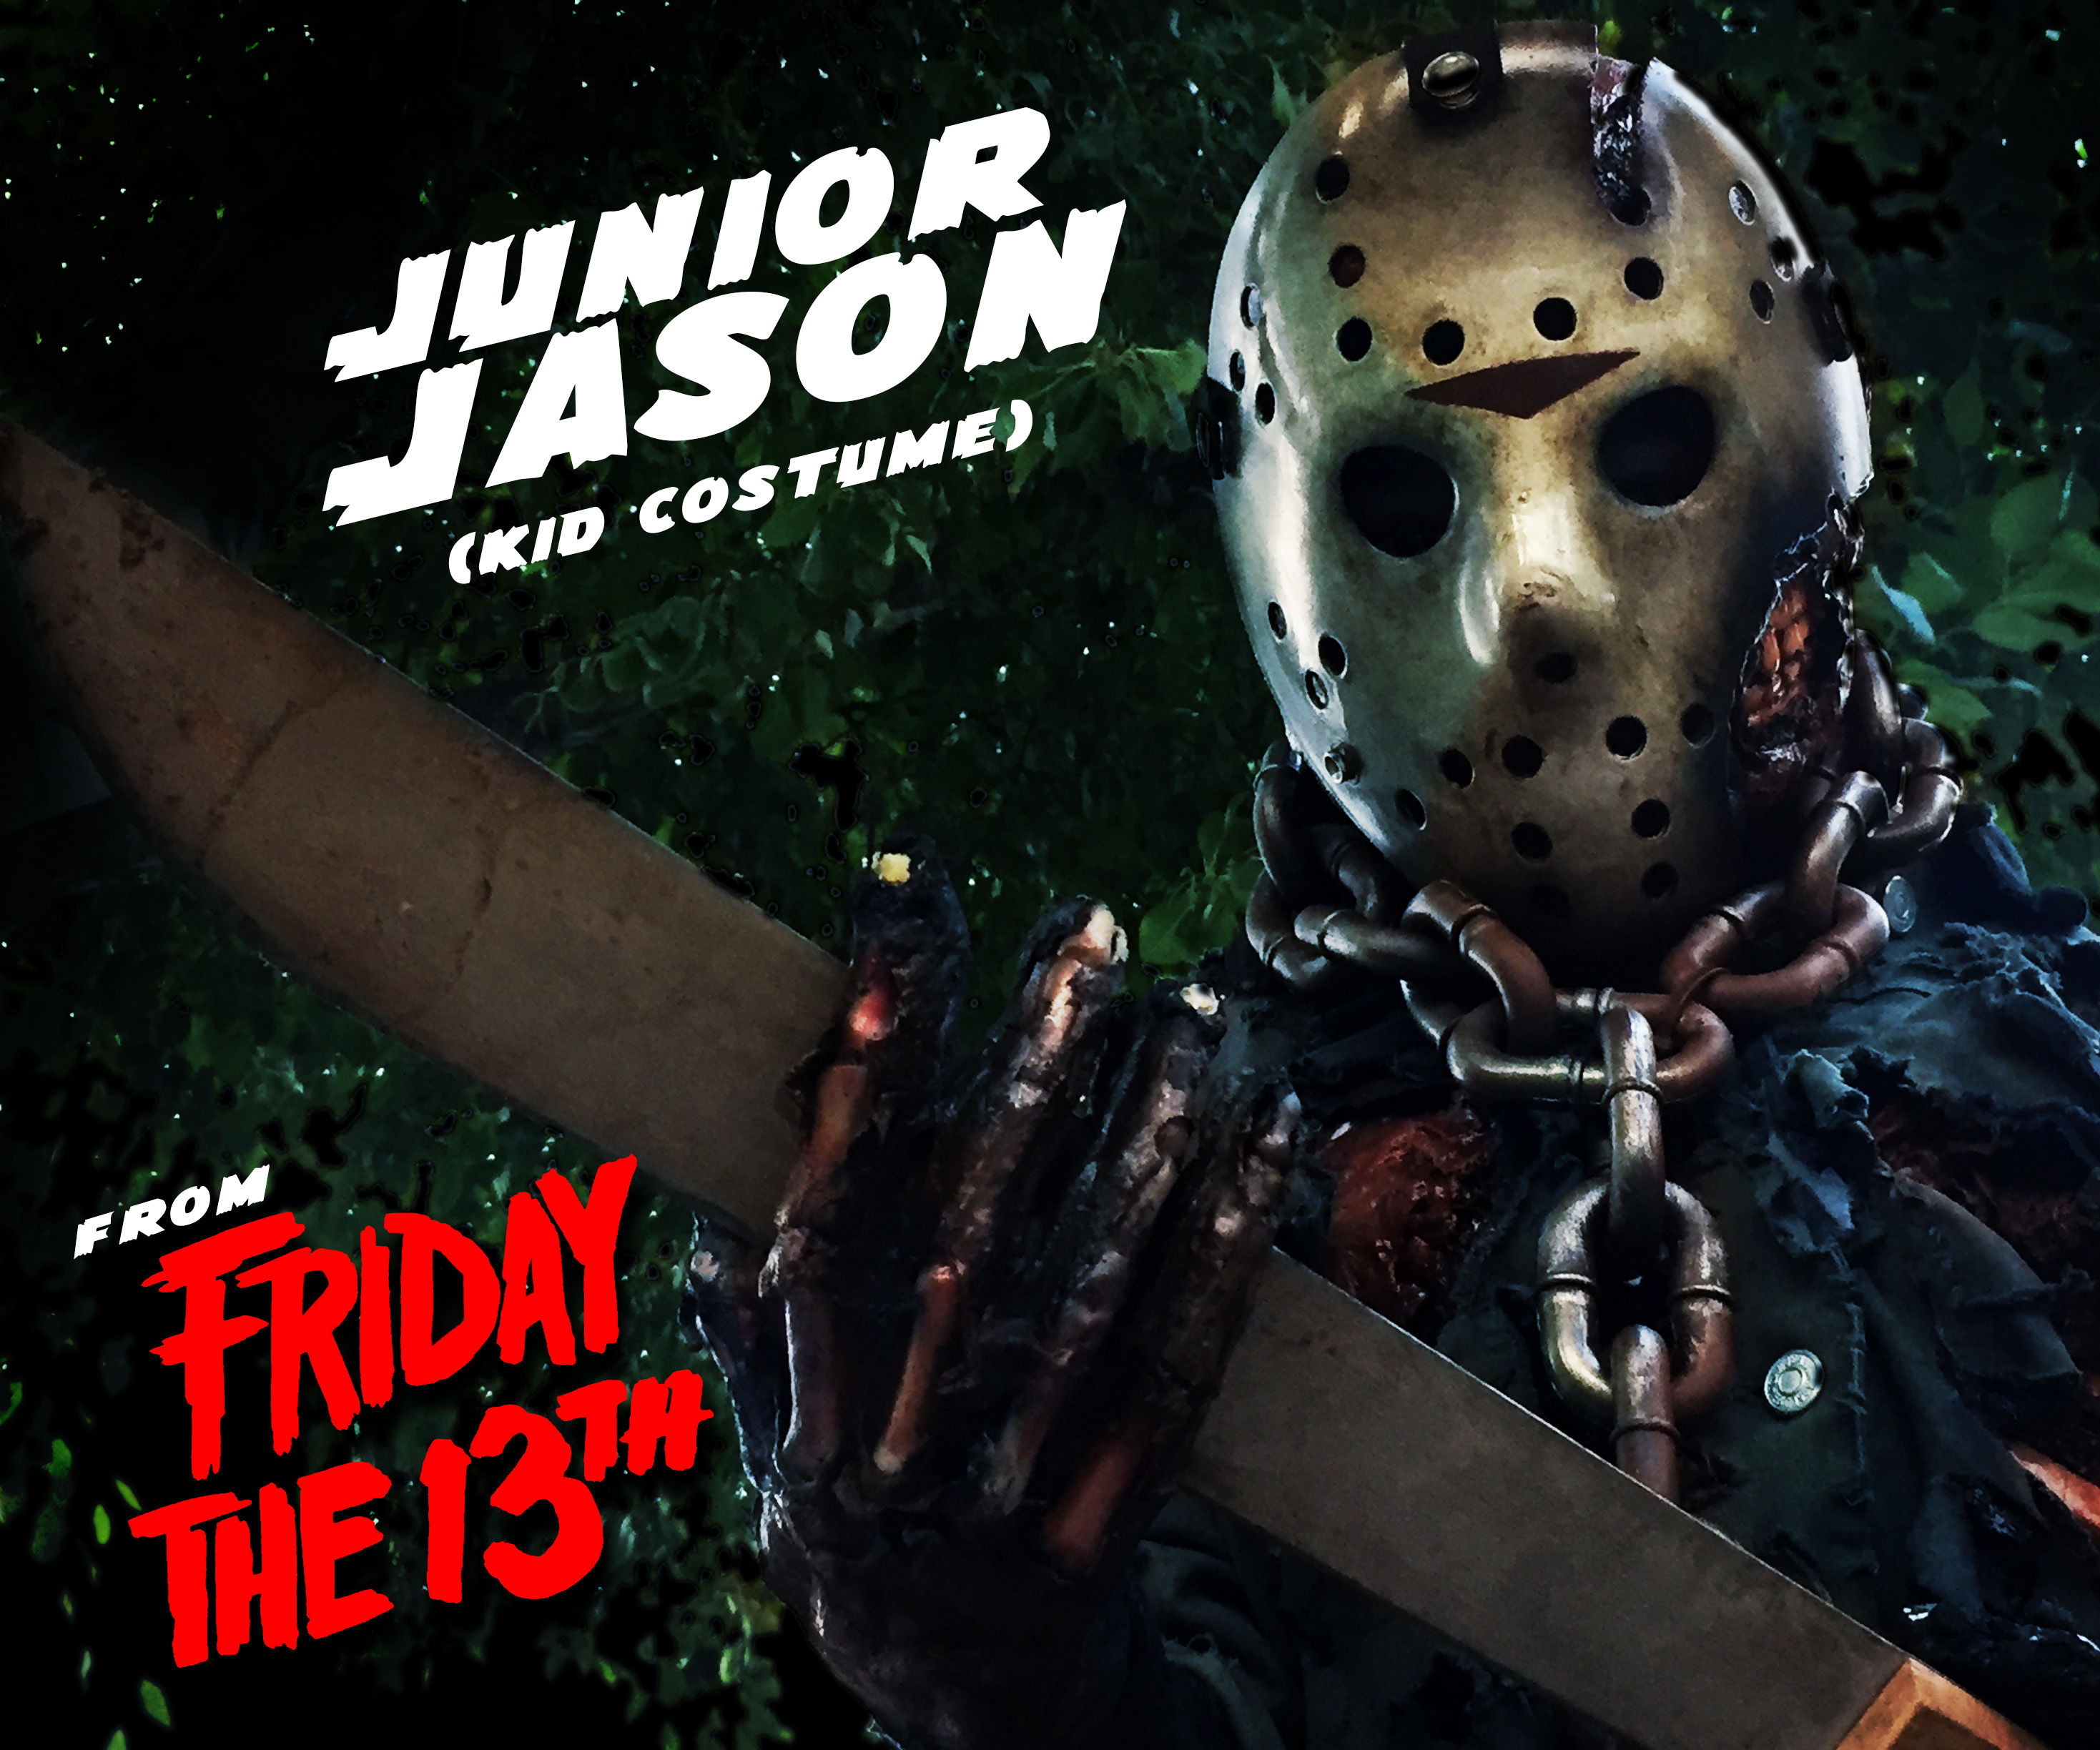 Junior Jason from Friday The 13th!